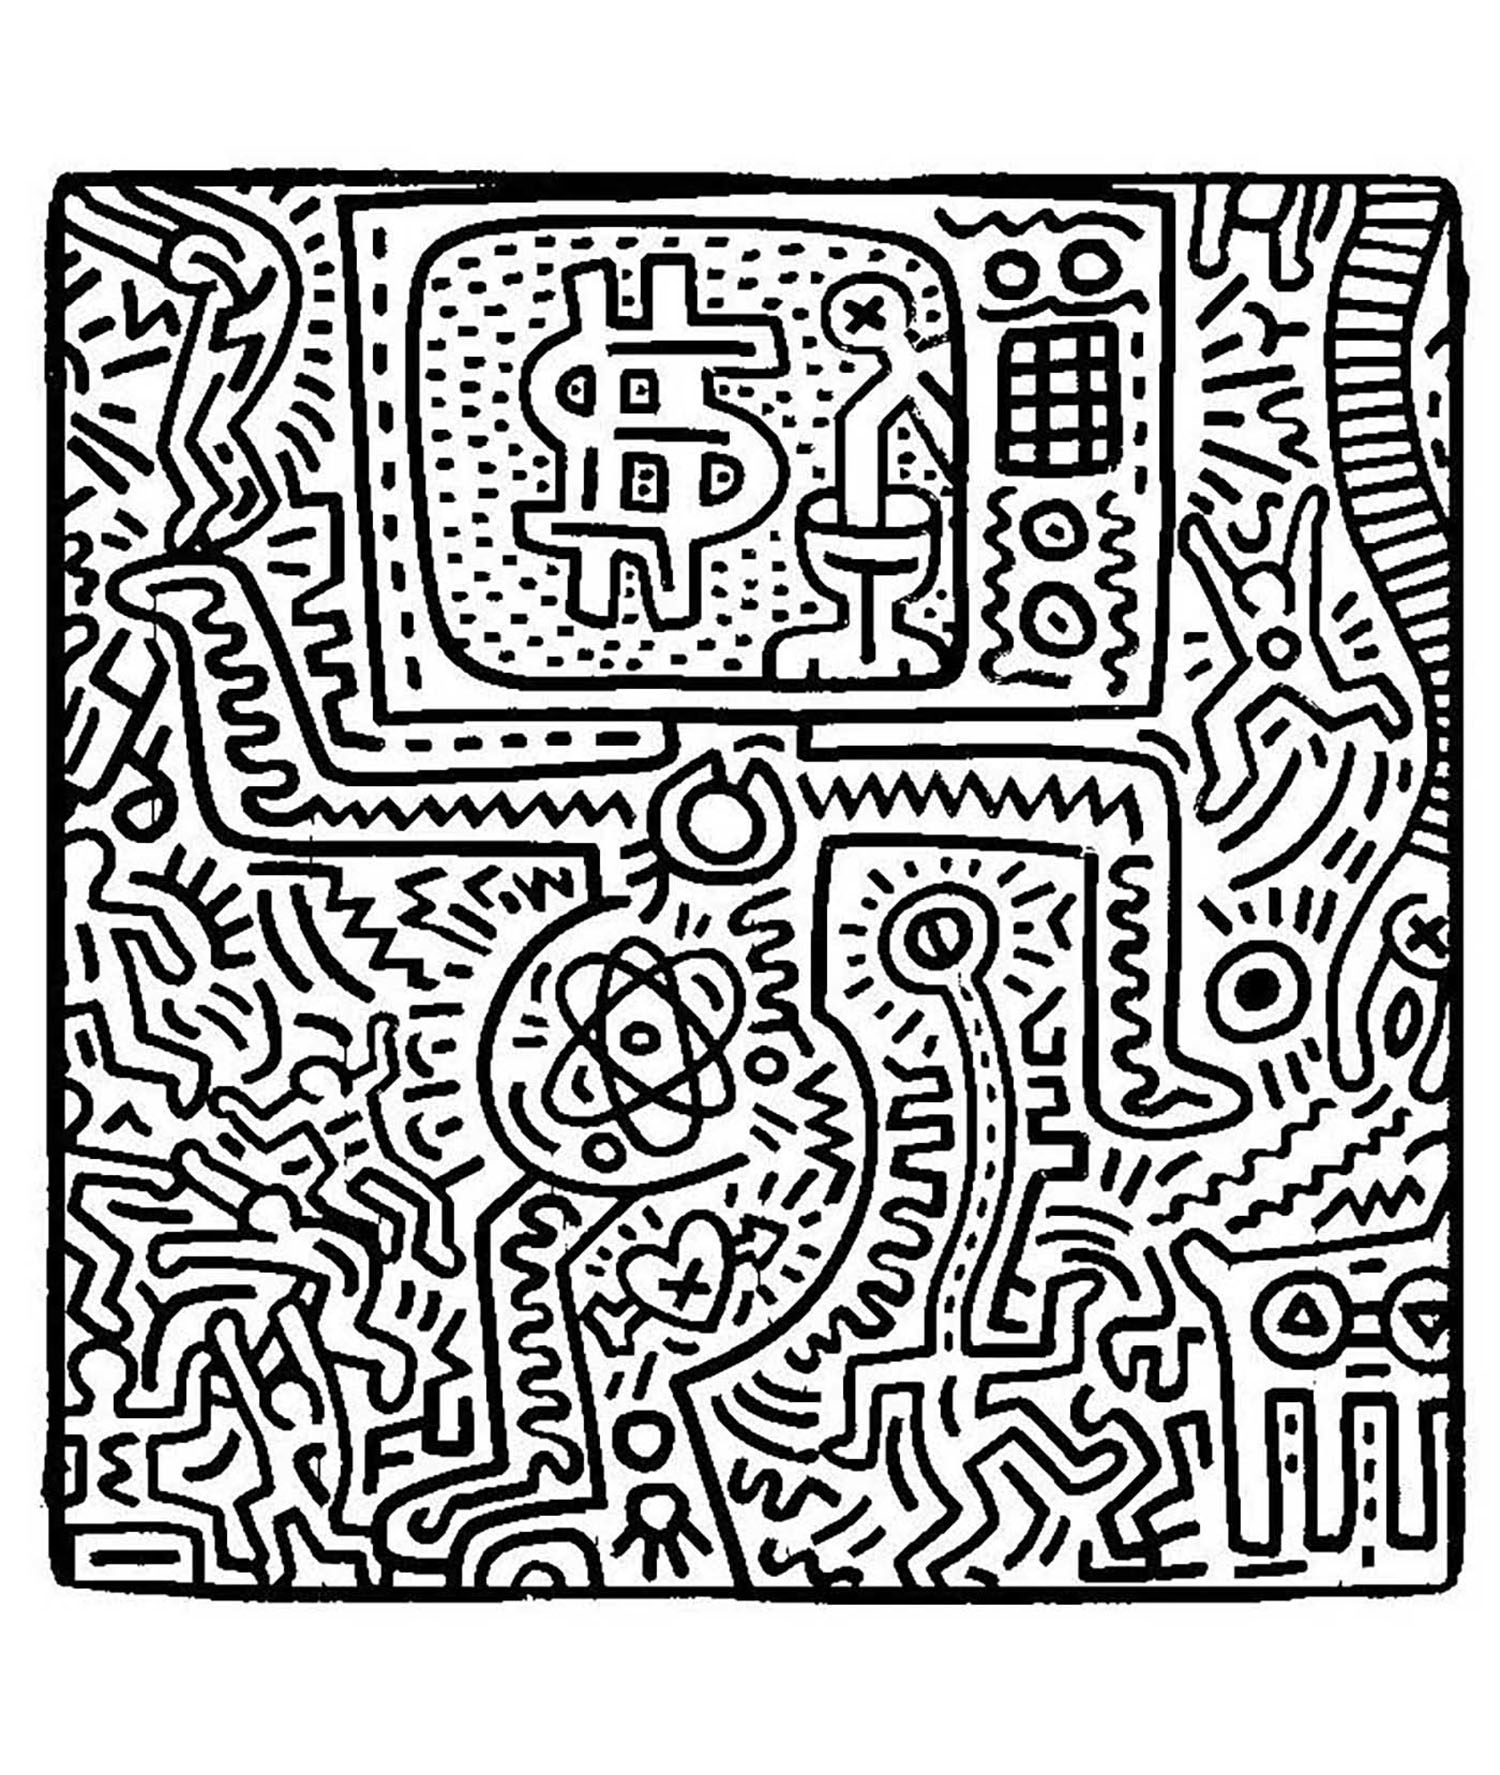 keith haring coloring pages keith haring arts printable coloring pages realistic keith pages coloring haring